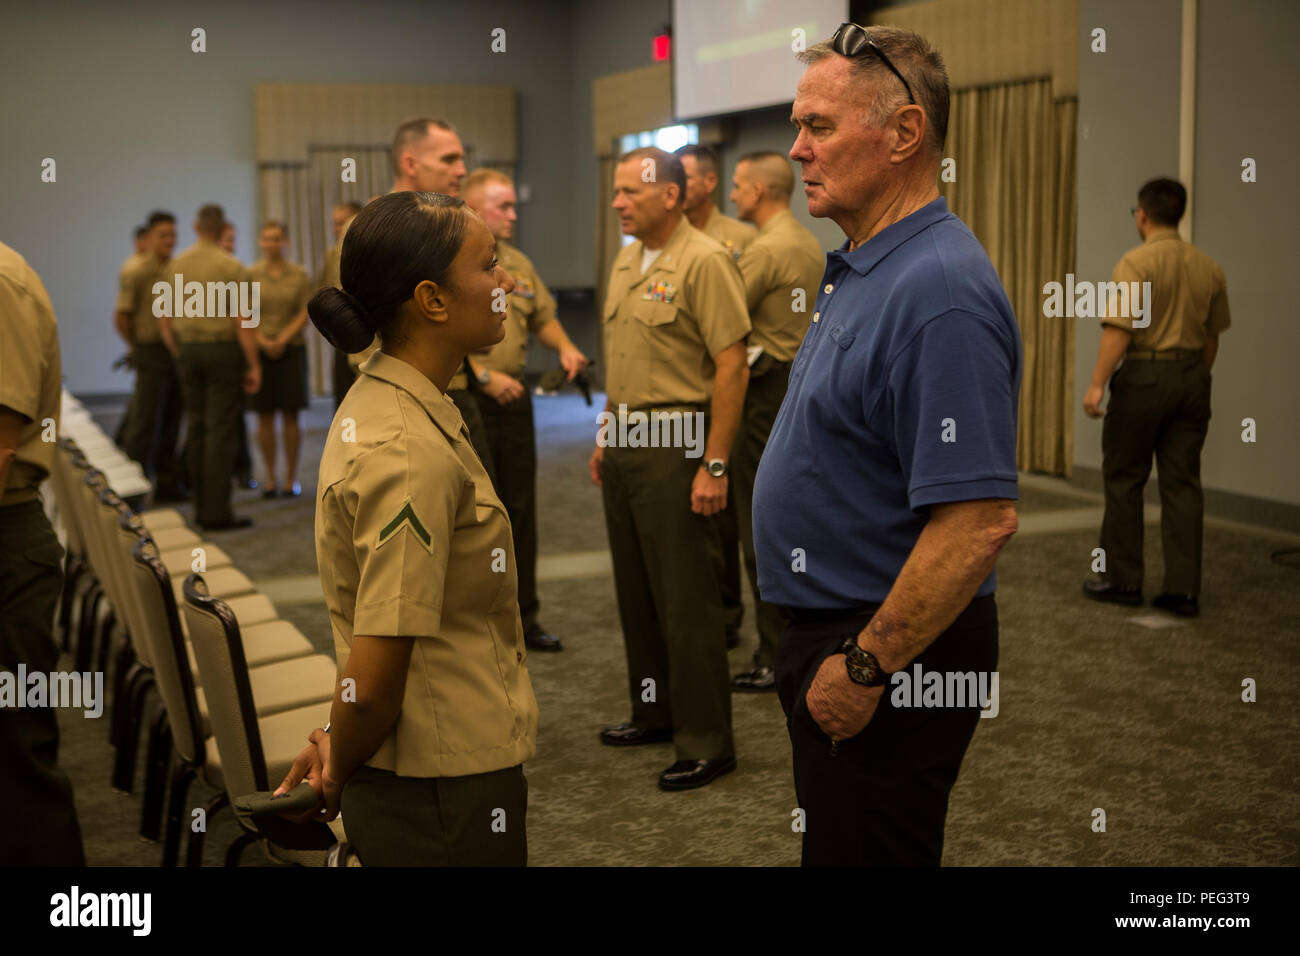 Retired U.S. Marine Corps Lt. Col. Jake Matthews, guest speaker, receives comments and answers questions after a 2nd Marine Expeditionary Force, Force Preservation Campaign, 'Protect what you've earned' brief at Marine Corps Air Station Cherry Point, N.C., on Aug. 21, 2015. The purpose of the campaign is to promote and inculcate a culture of making responsible decision to help ensure our Marines and Sailors protect what they have earned as service members by avoiding destructive behavior that places them at great personal and professional risk. (U.S. Marine Corps photo by Pfc. Jered T. Stone/R - Stock Image